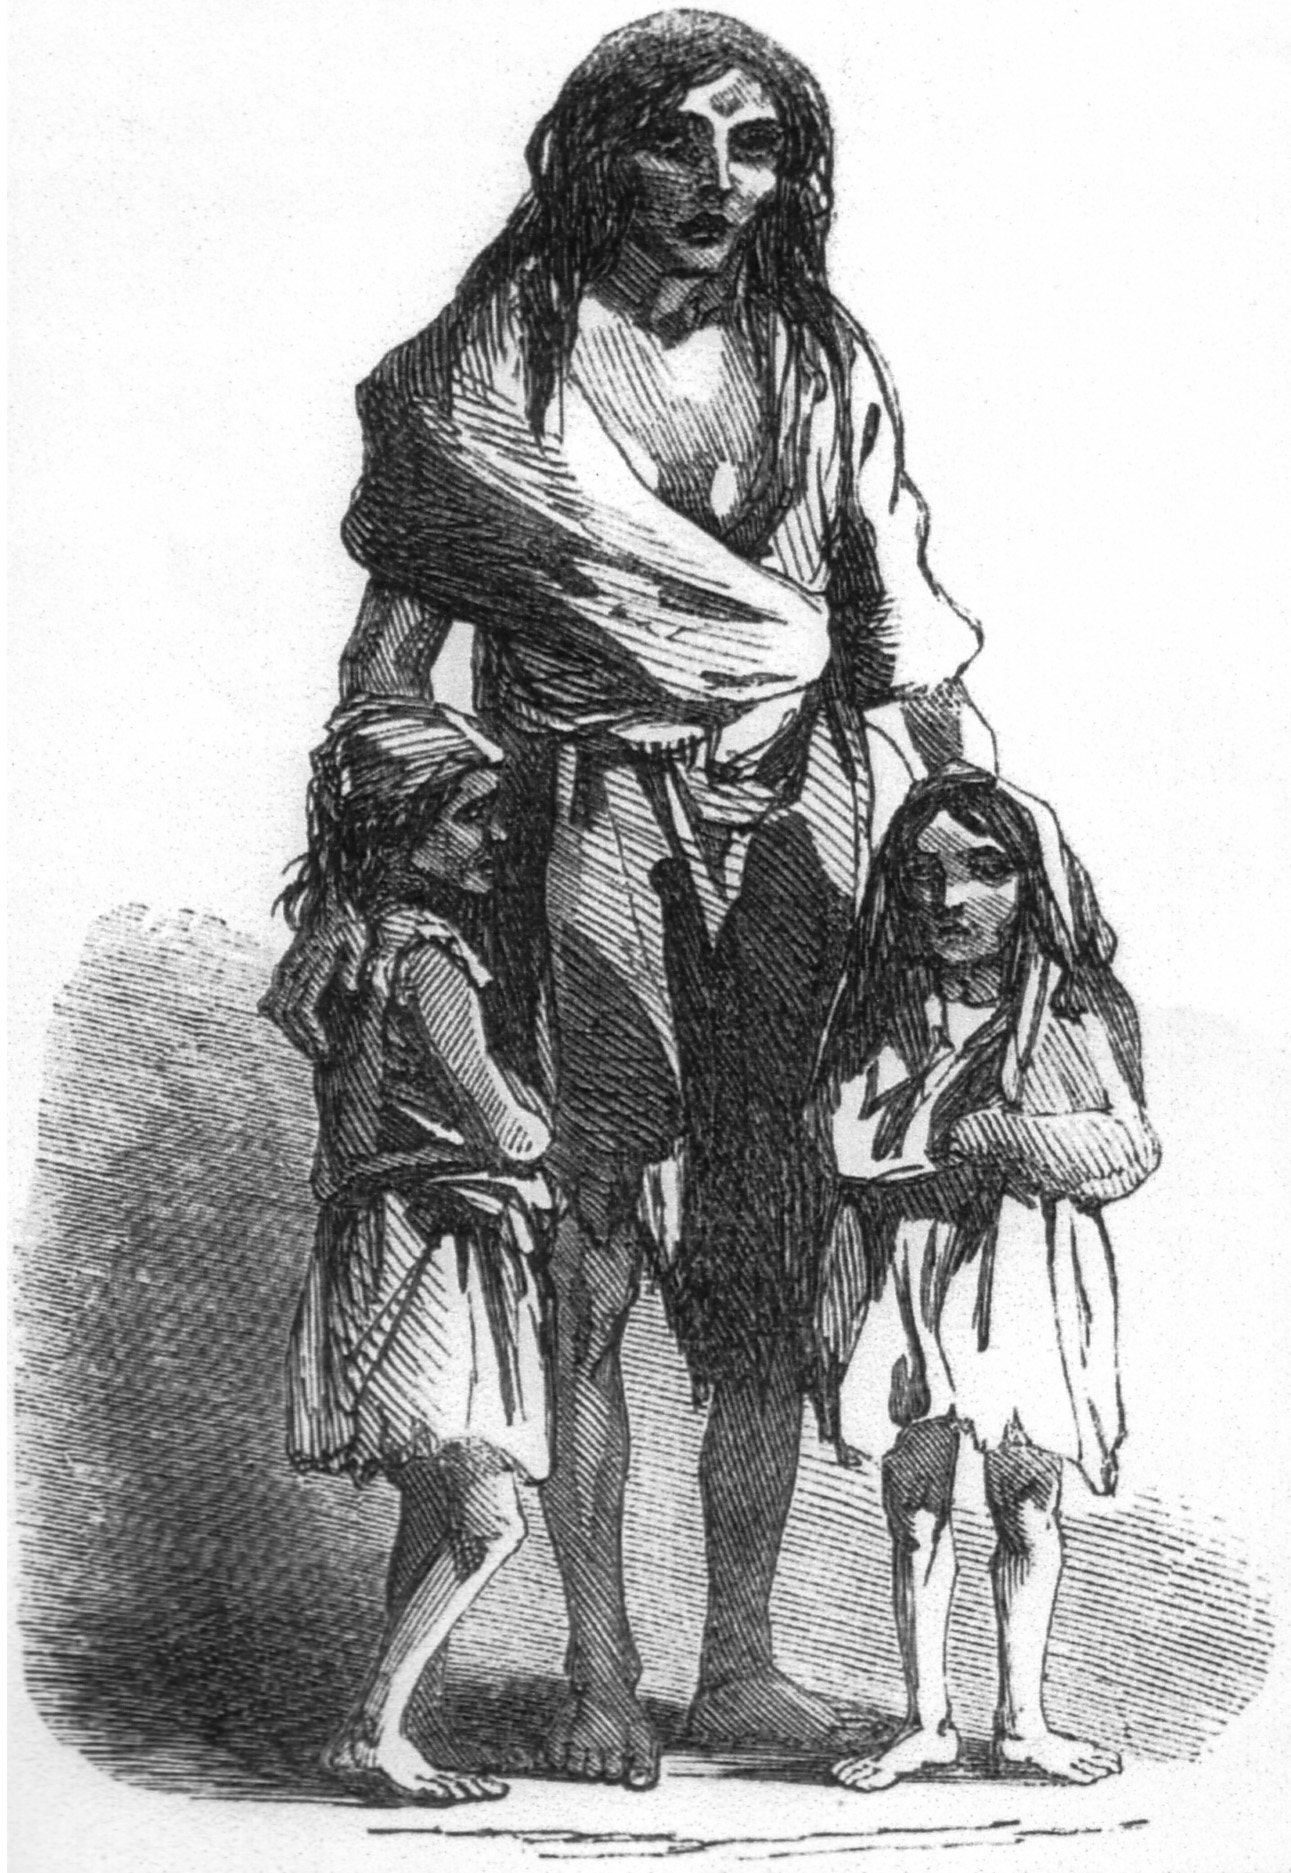 A black and white sketch drawing shows a woman in rags standing with long, messy hair. She has her arms around two small children, one on each side of her. The children are also dressed in rags. All three figures show hopelessness on their faces.